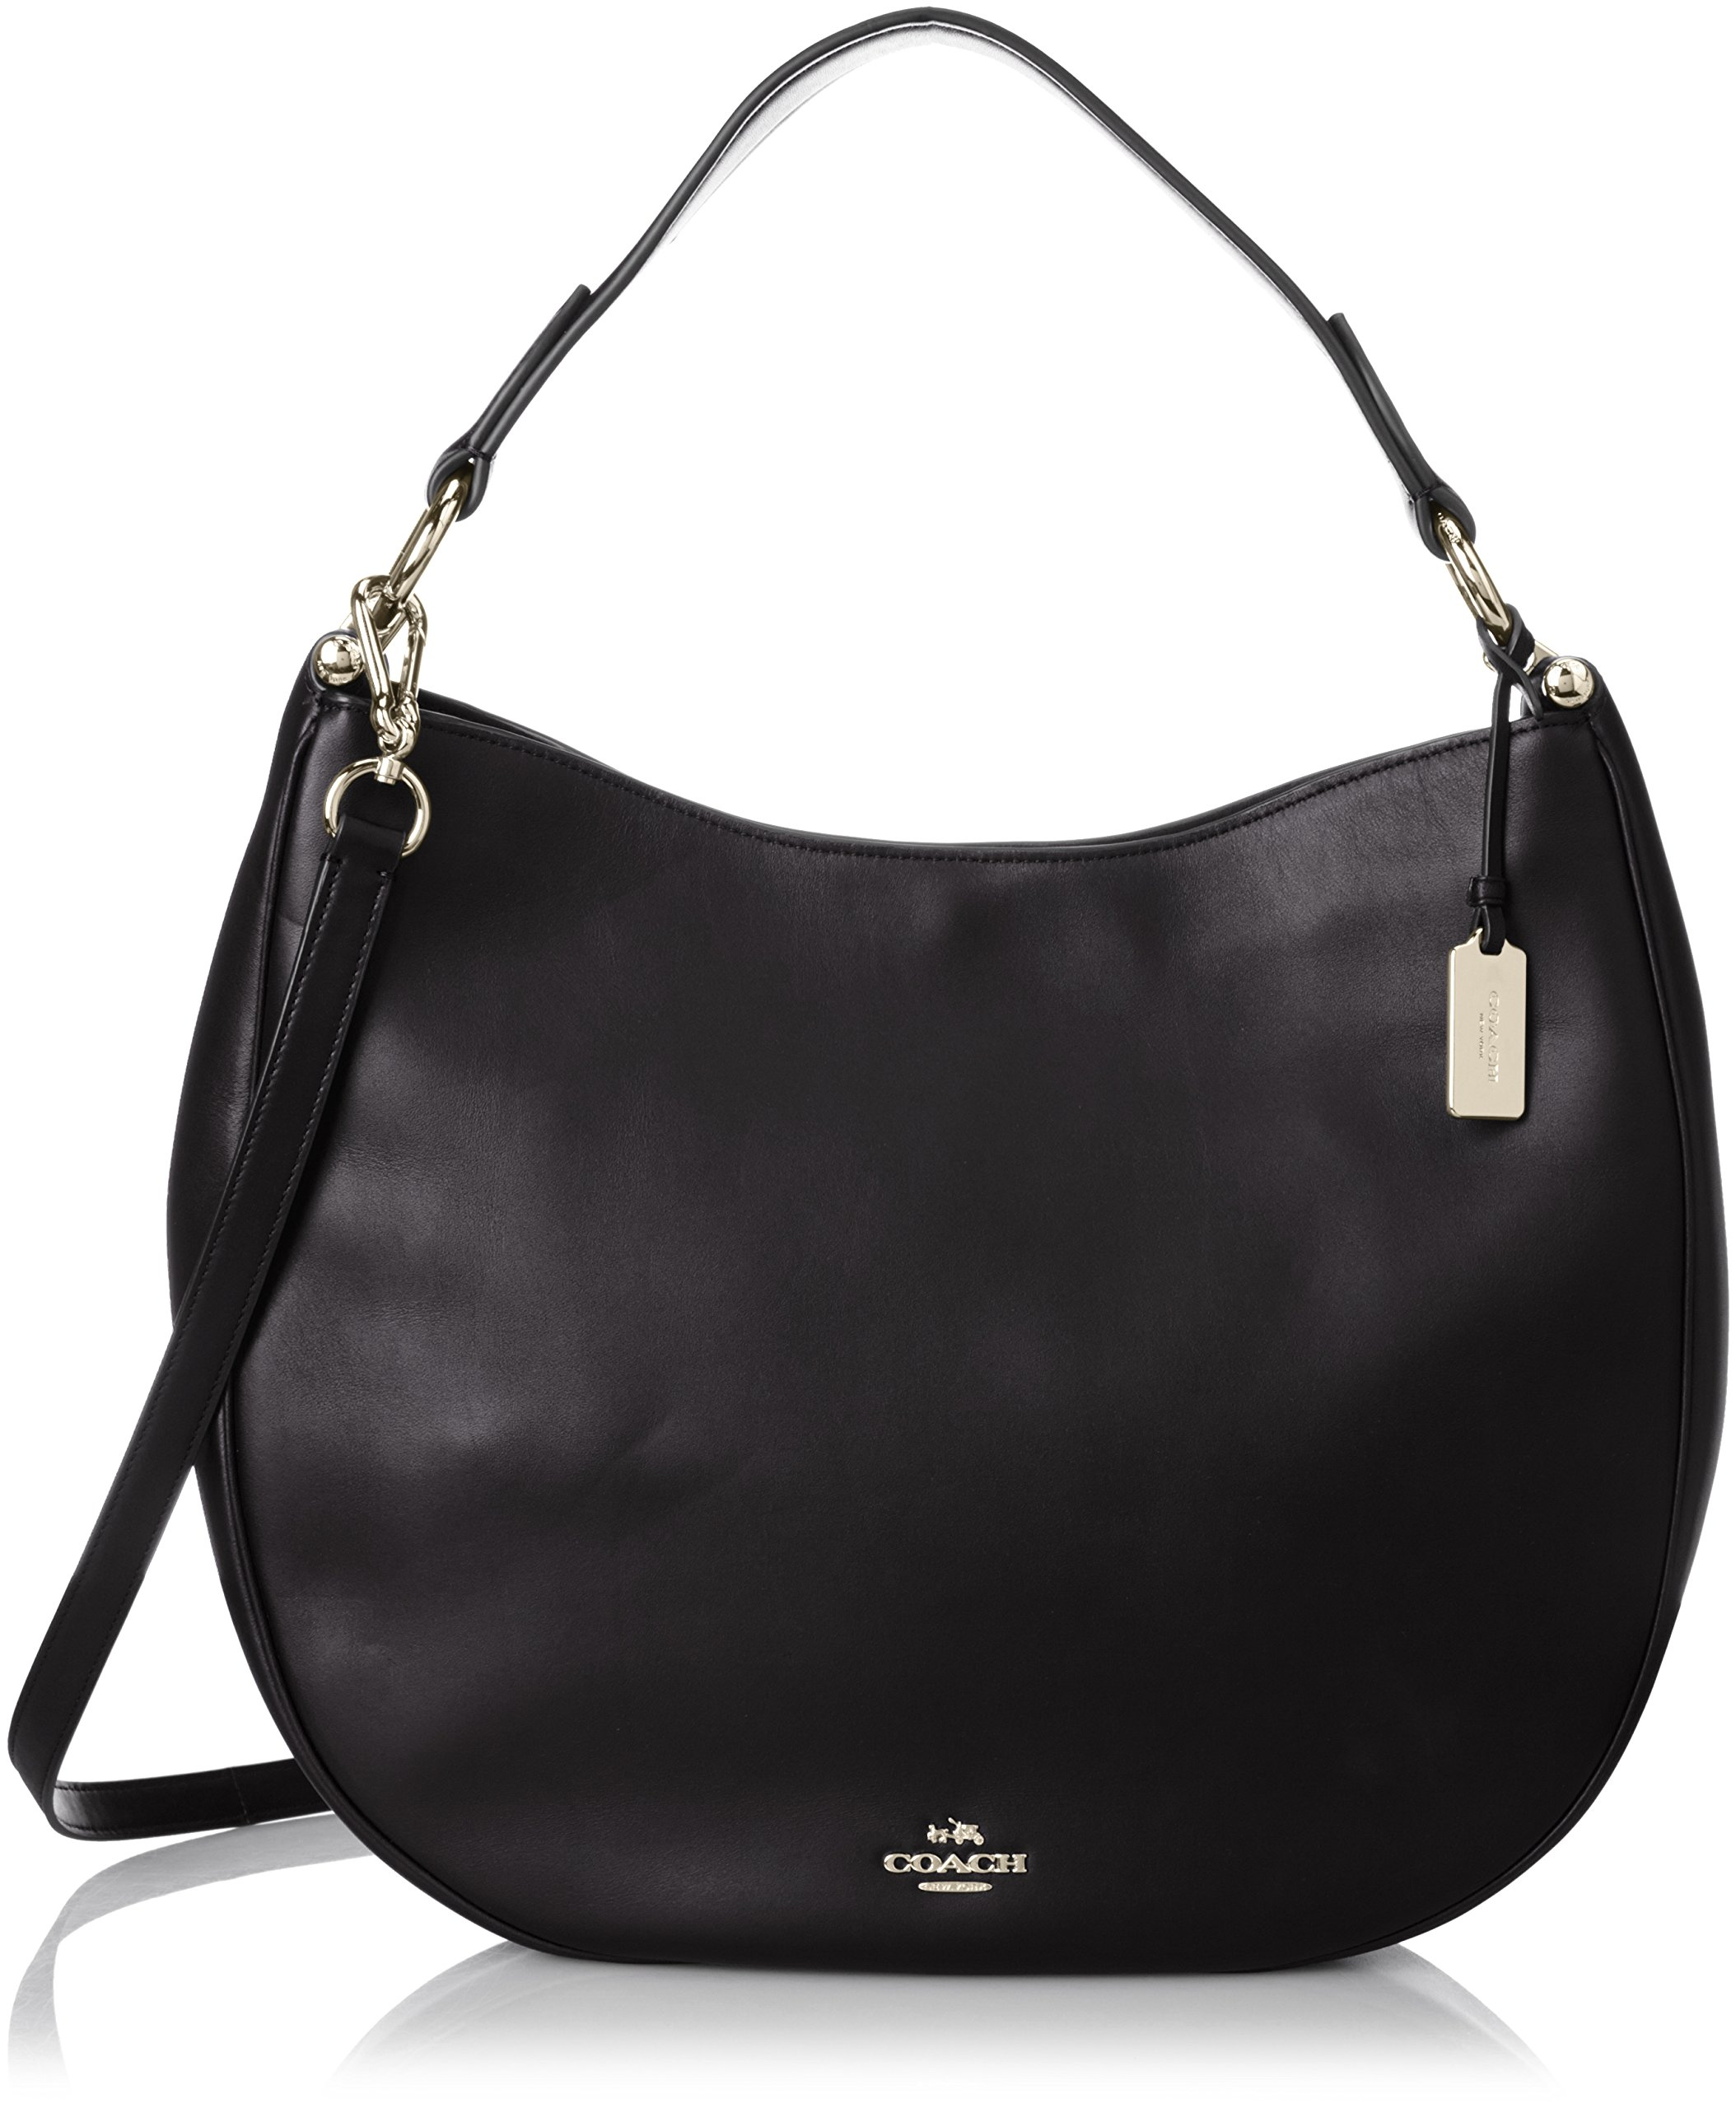 COACH Women's Natural Calf Nomad Hobo LI/Black Hobo